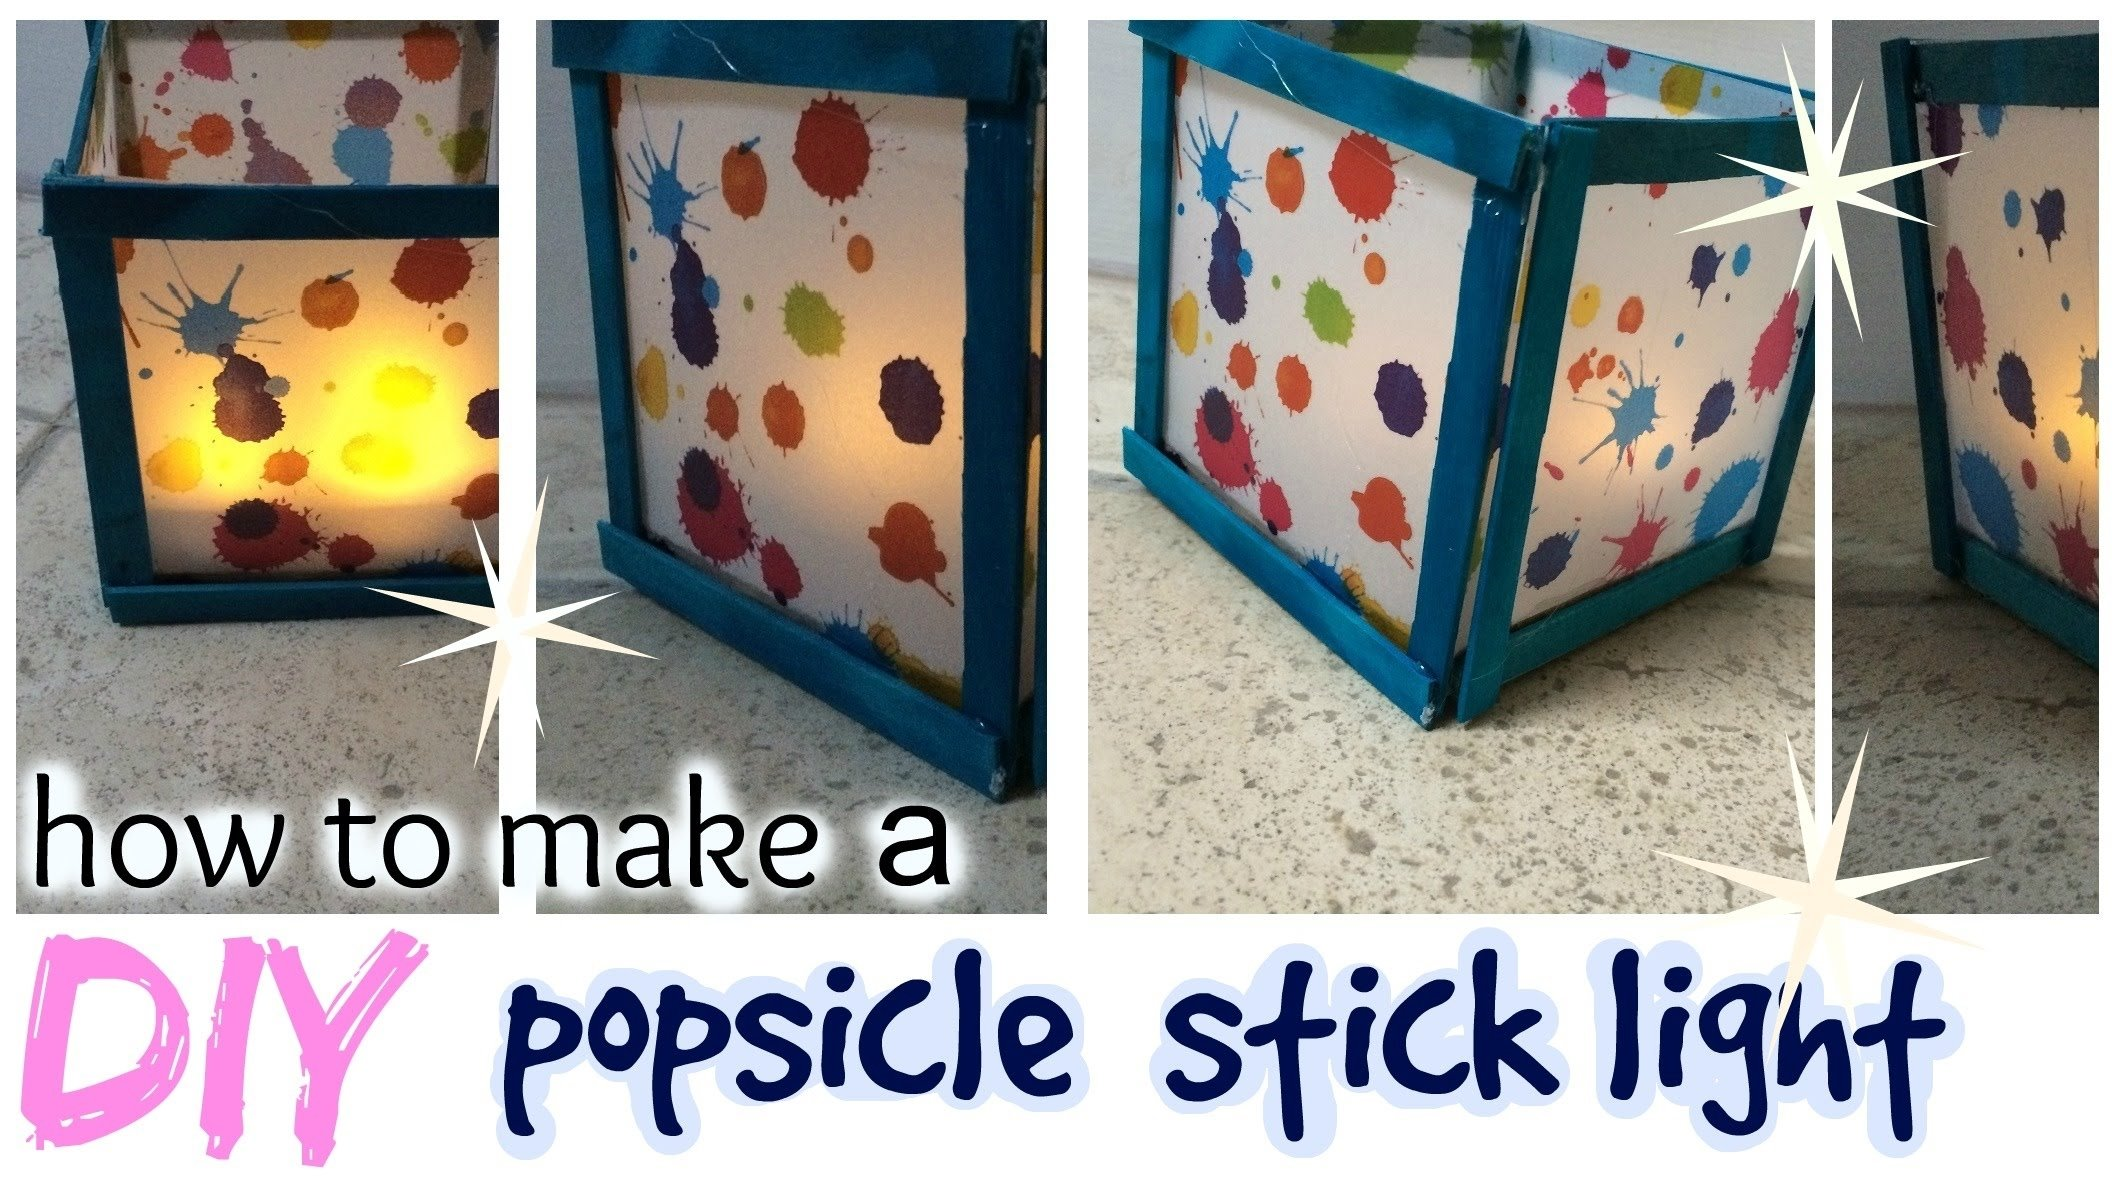 10 Spectacular Craft Ideas With Popsicle Sticks diy popsicle stick light easy craft idea youtube 2021